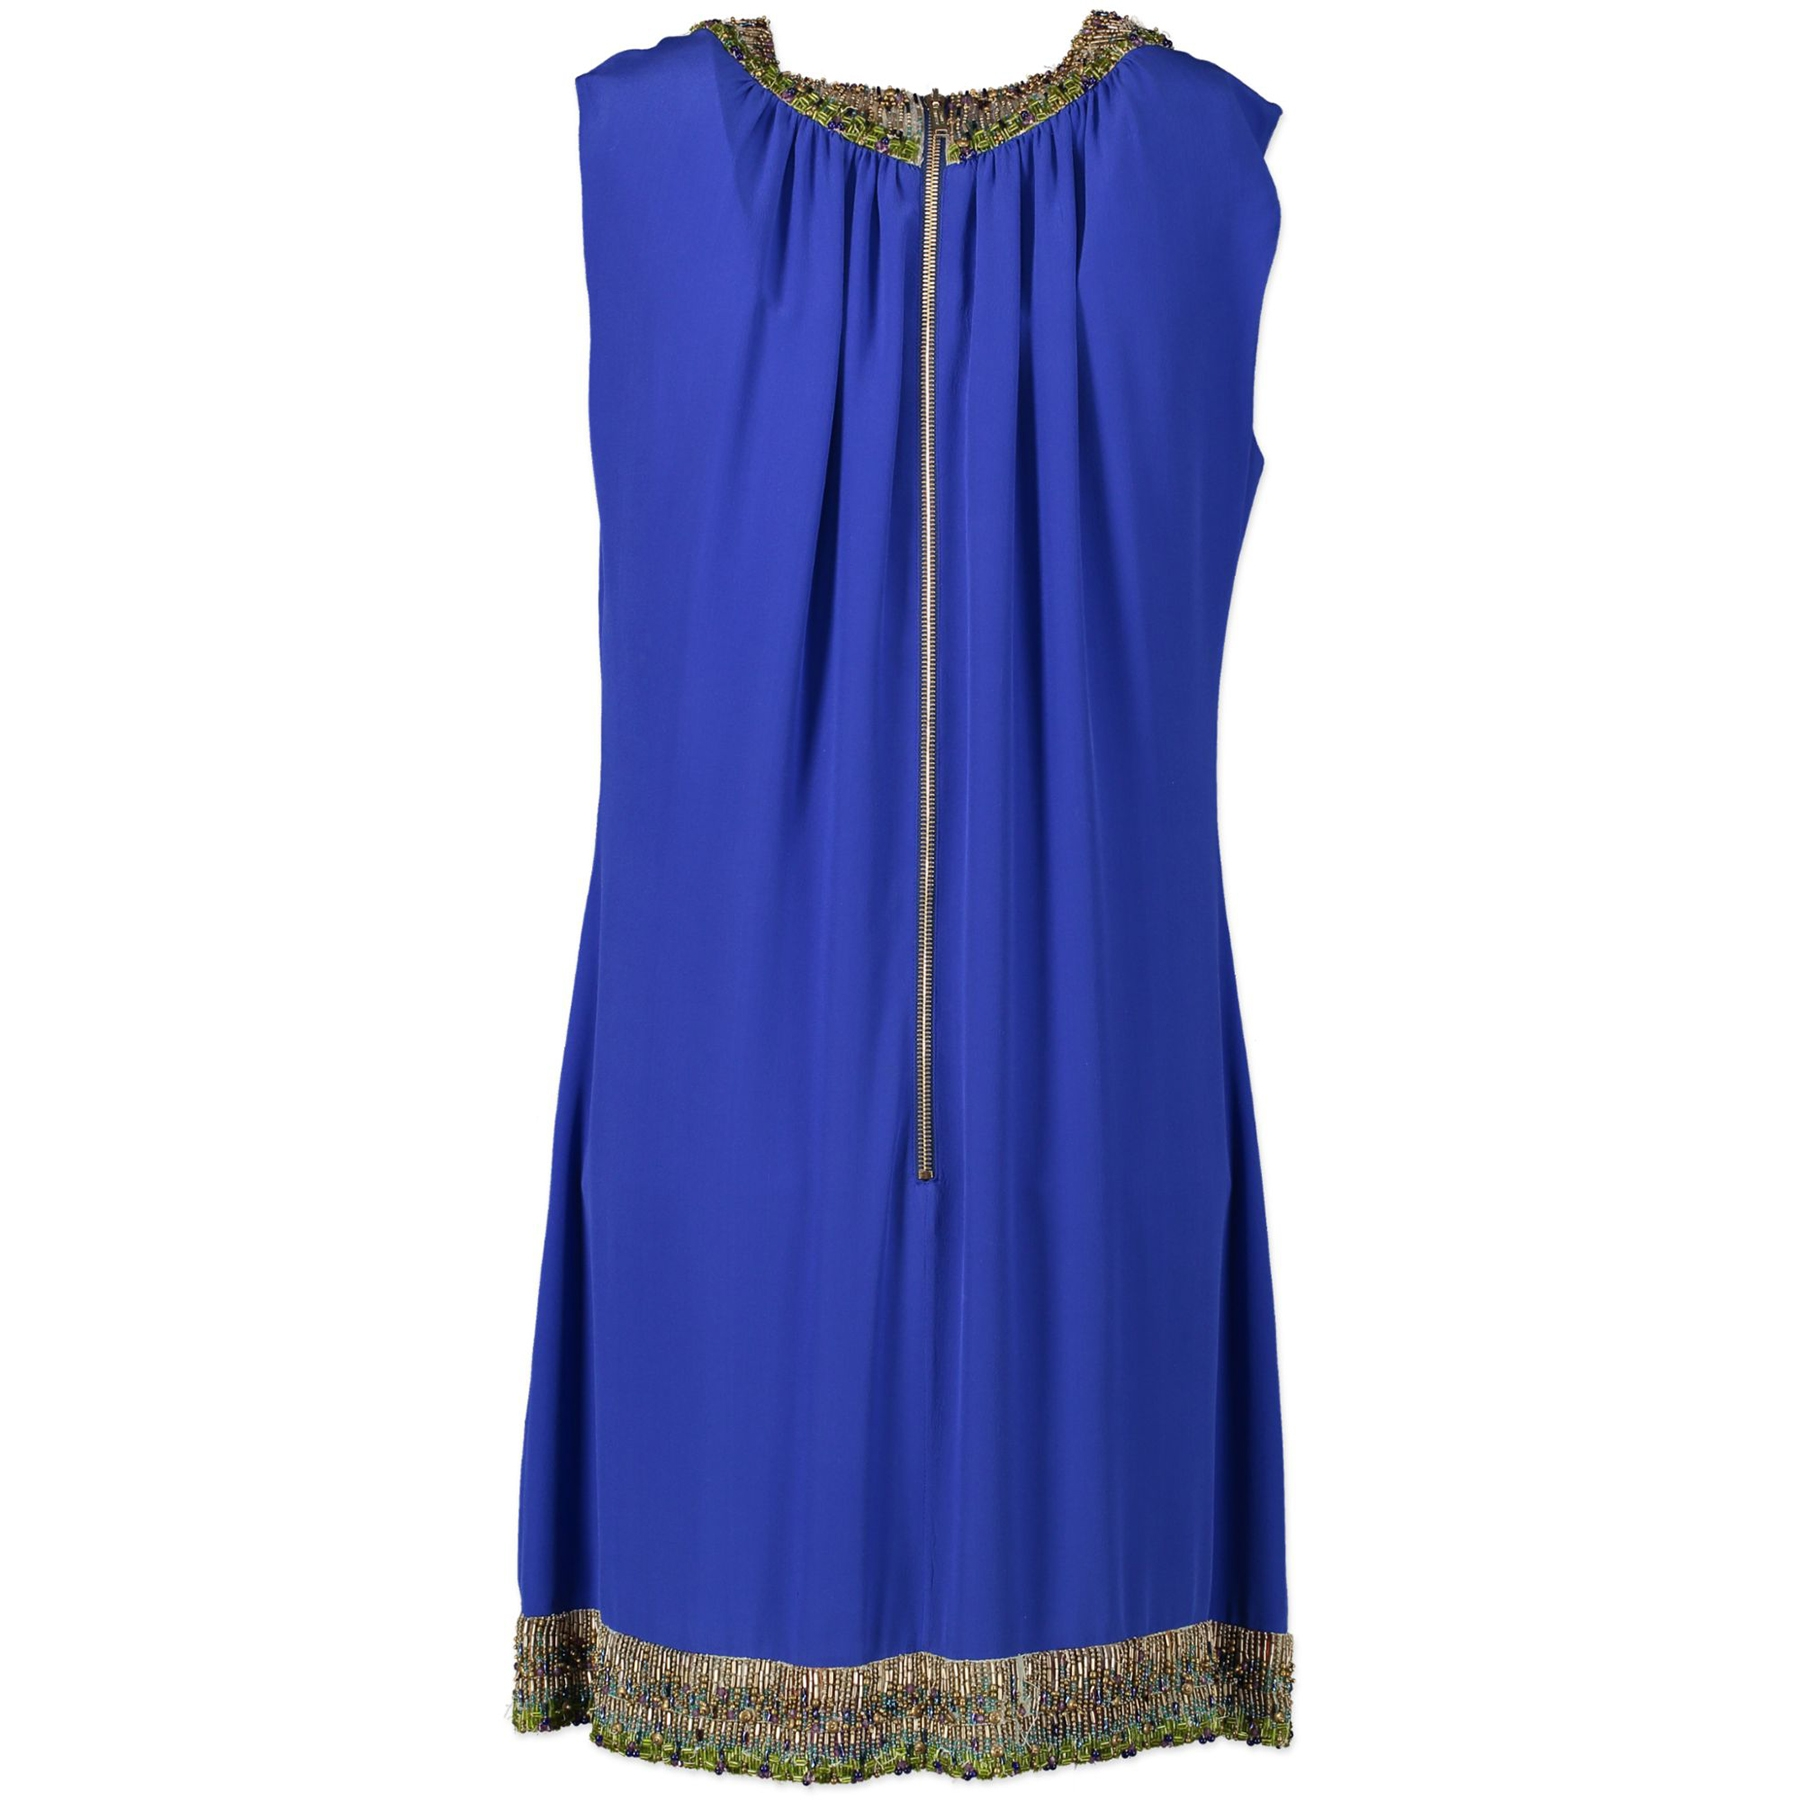 Authentic Secondhand Matthew Williamson Cobalt Blue Beaded Silk Dress - Size 44